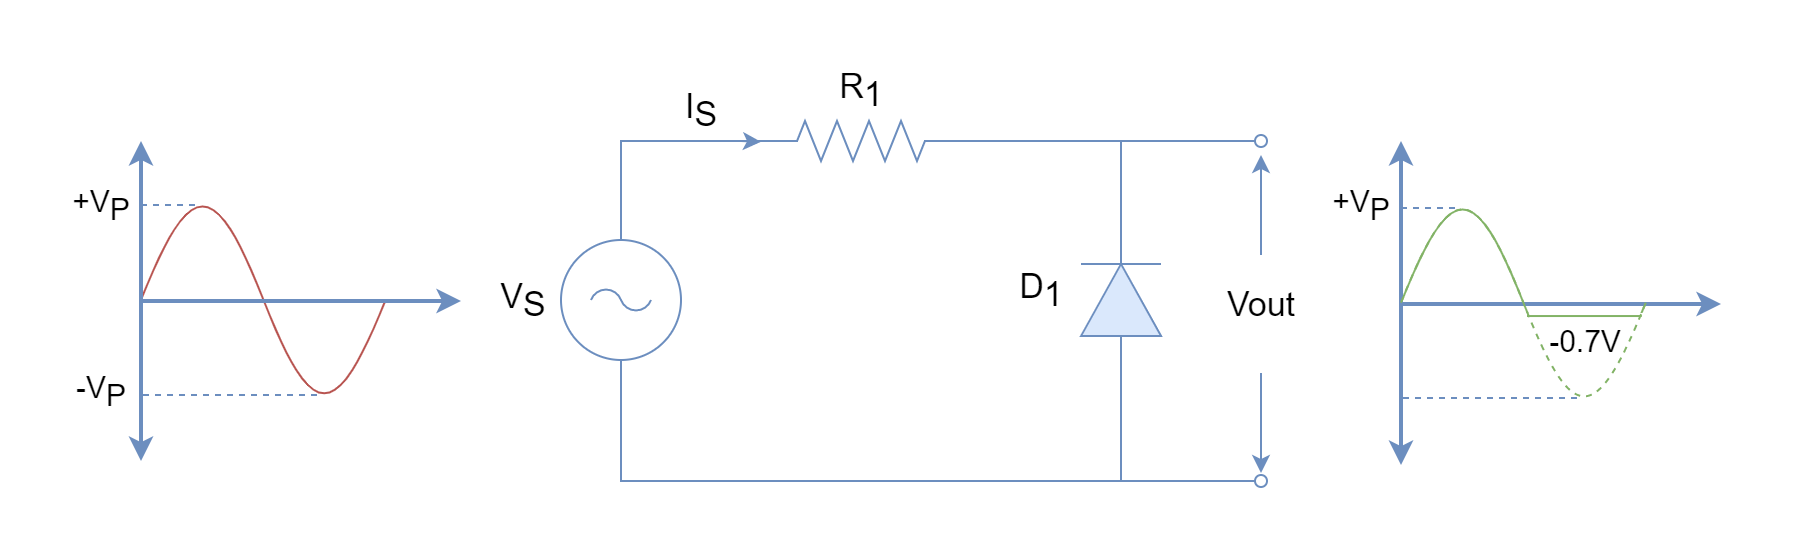 Negative diode clipping circuit